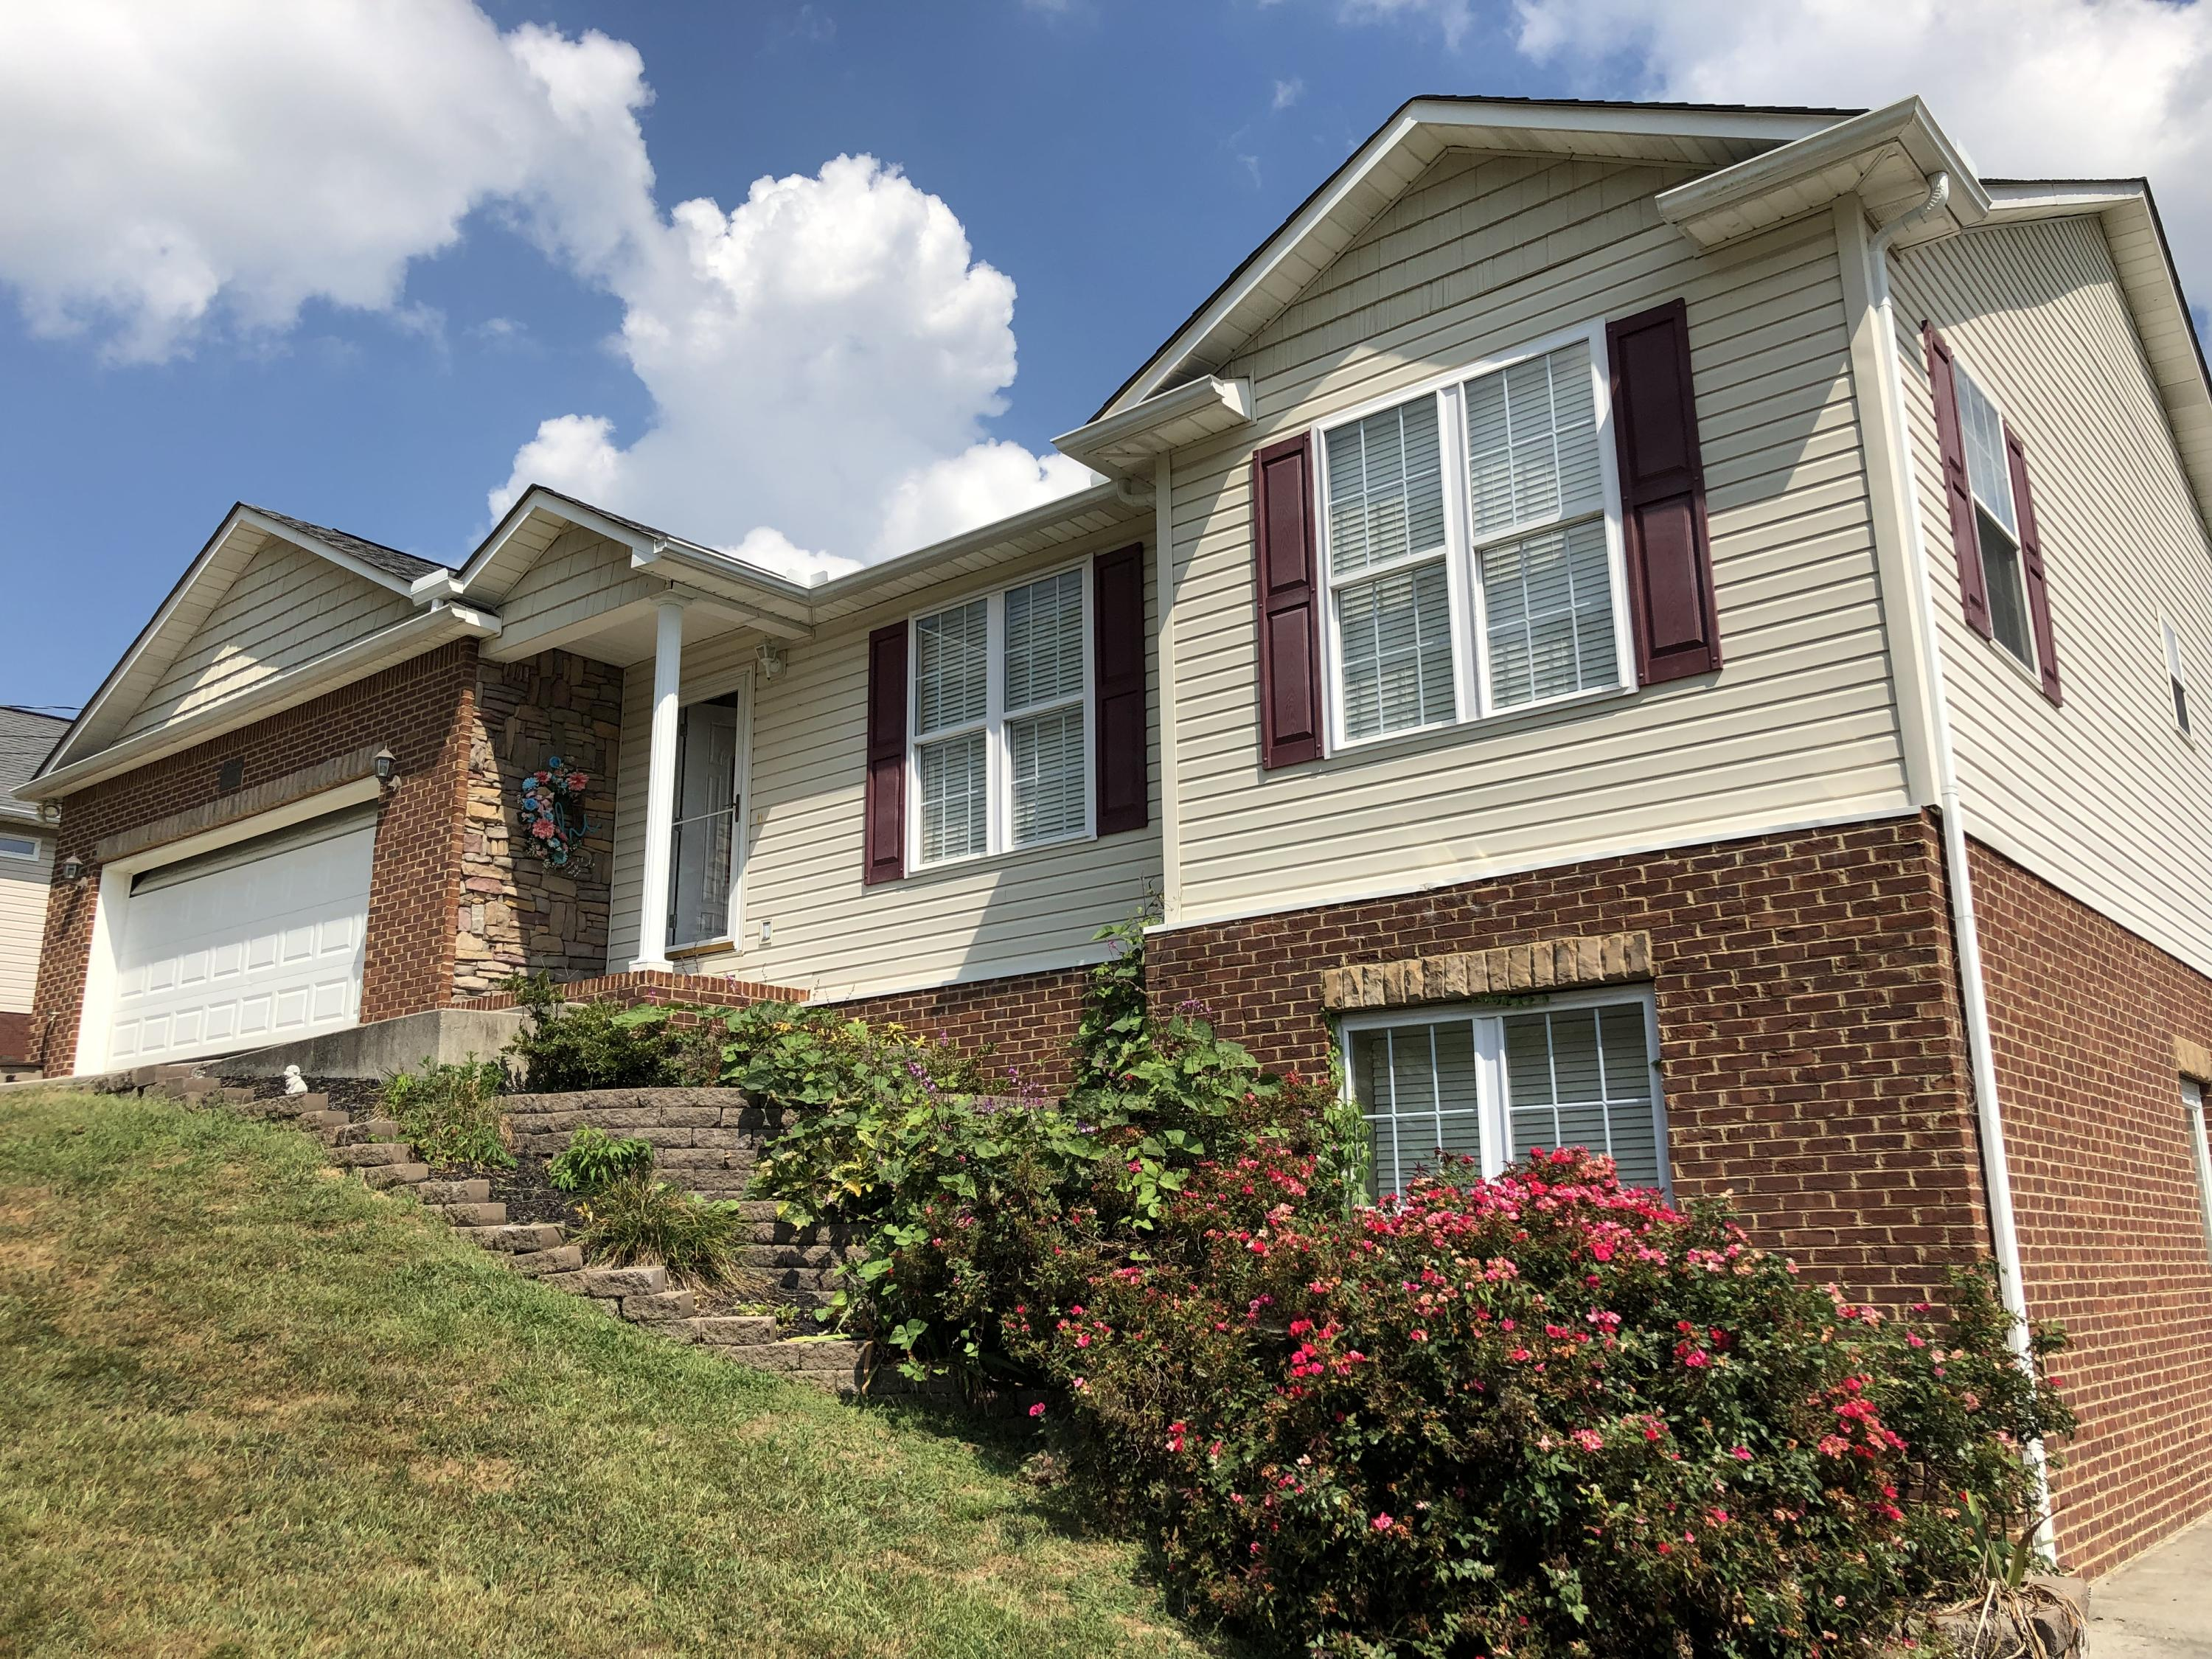 258 Covenant Lane, Maynardville, Tennessee 37807, 4 Bedrooms Bedrooms, ,3 BathroomsBathrooms,Single Family,For Sale,Covenant,1094572